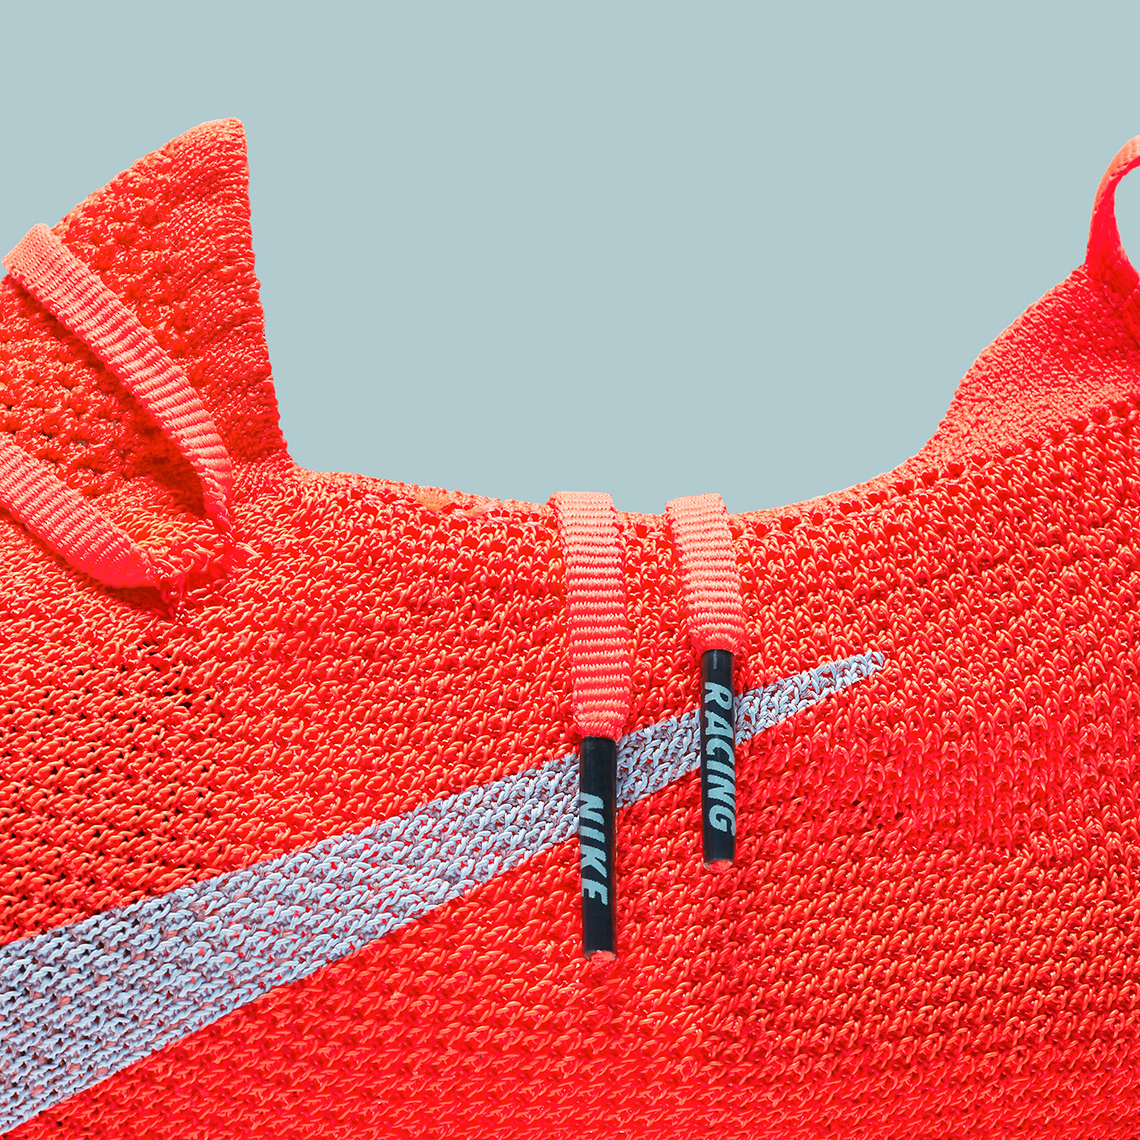 11826a10abf2 ... Crimson Ice Blue Style Code  AJ3857-600. Where to Buy  Nike Vaporfly 4%  Flyknit. Nike Coming Soon  Eastbay Coming Soon. Advertisement. Advertisement